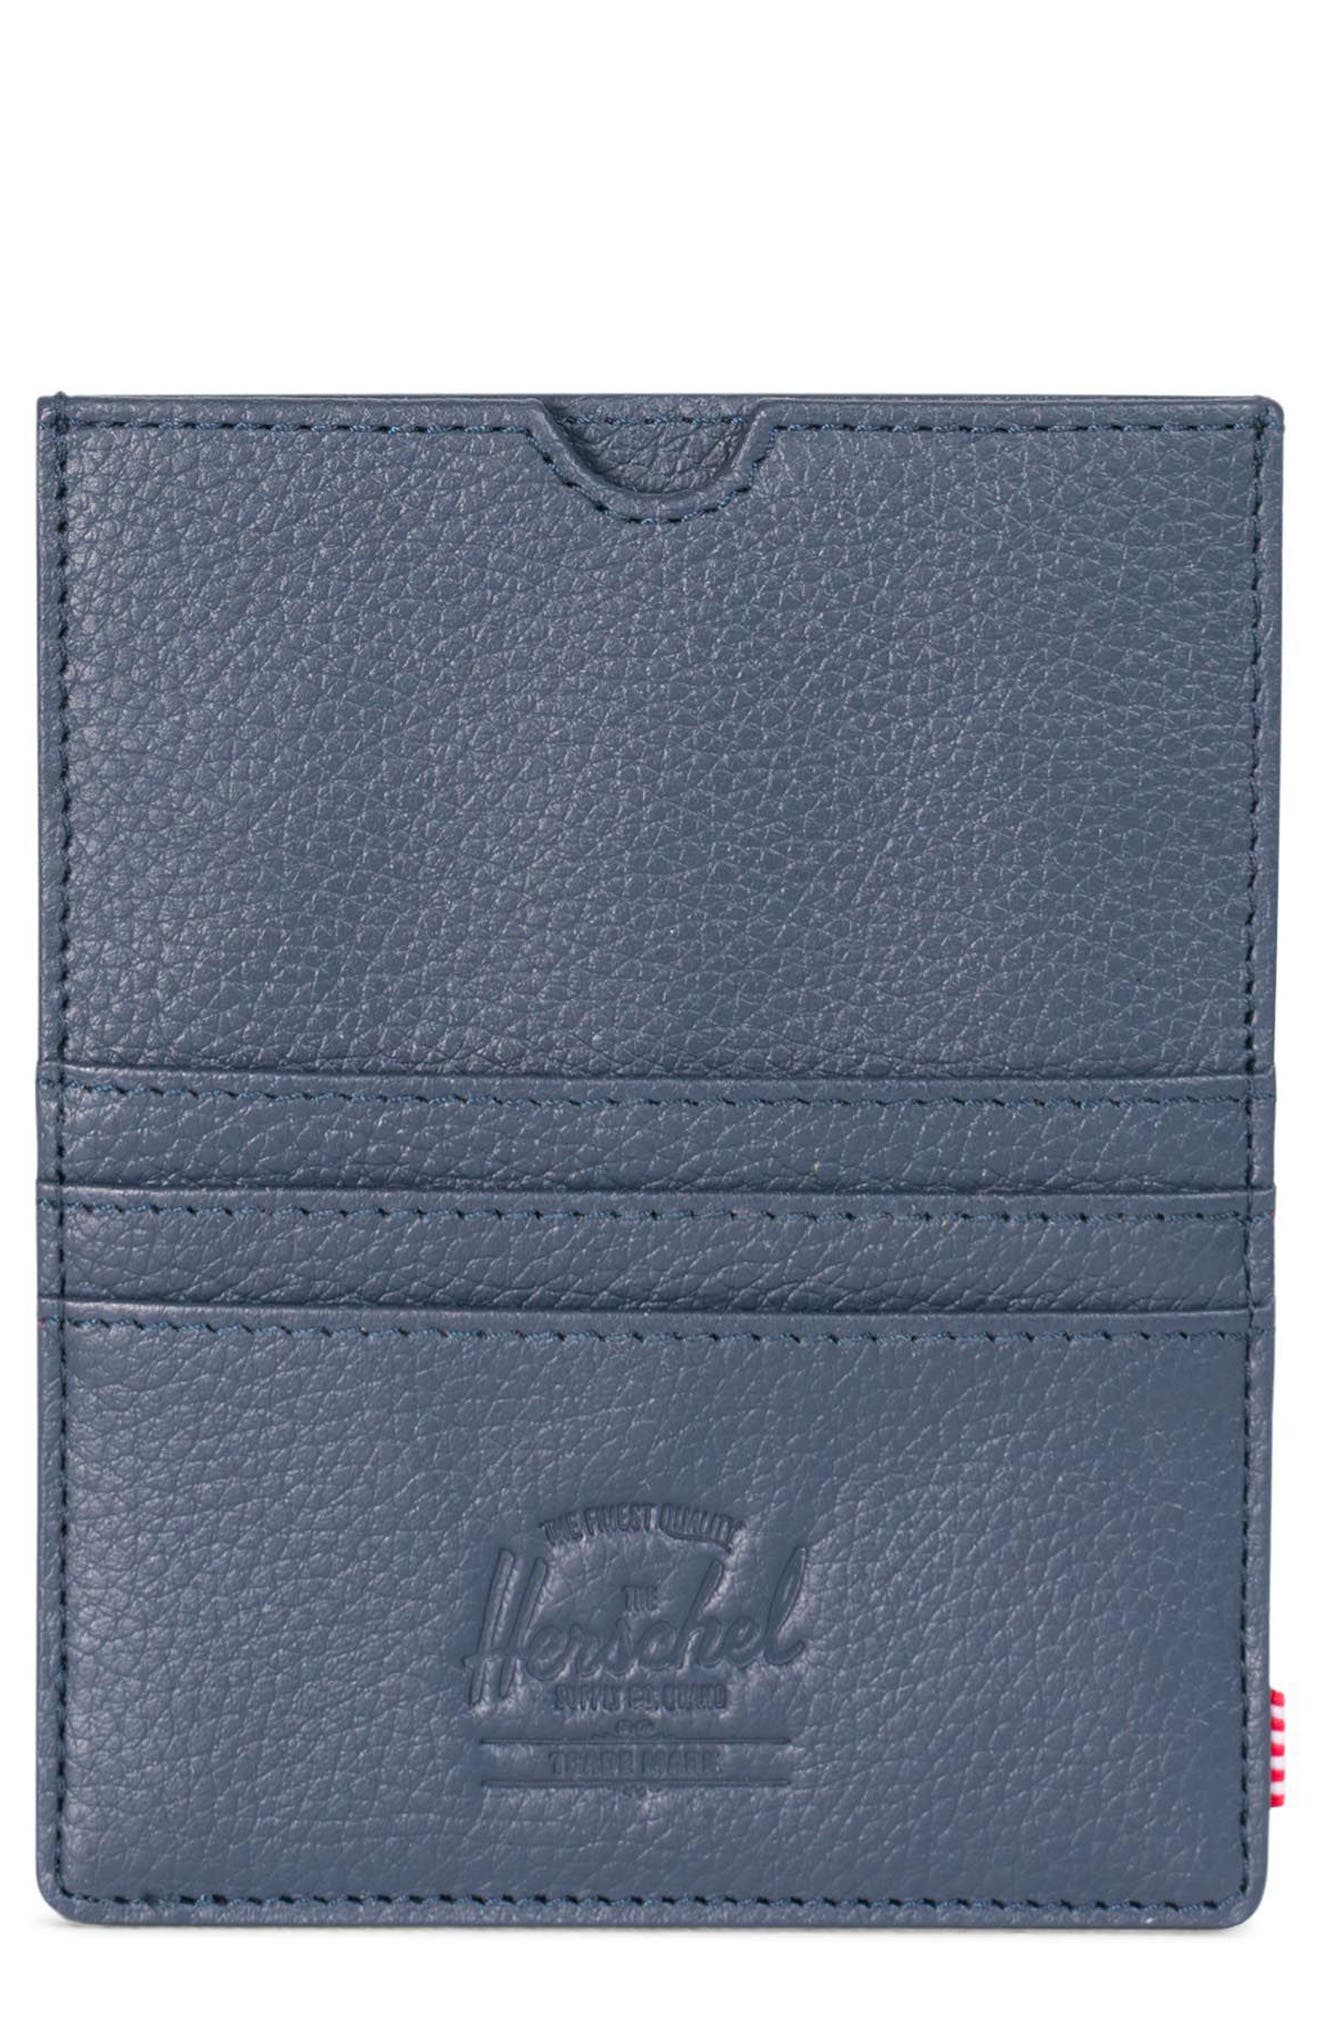 Herschel Supply Co. Eugene Leather Card Case